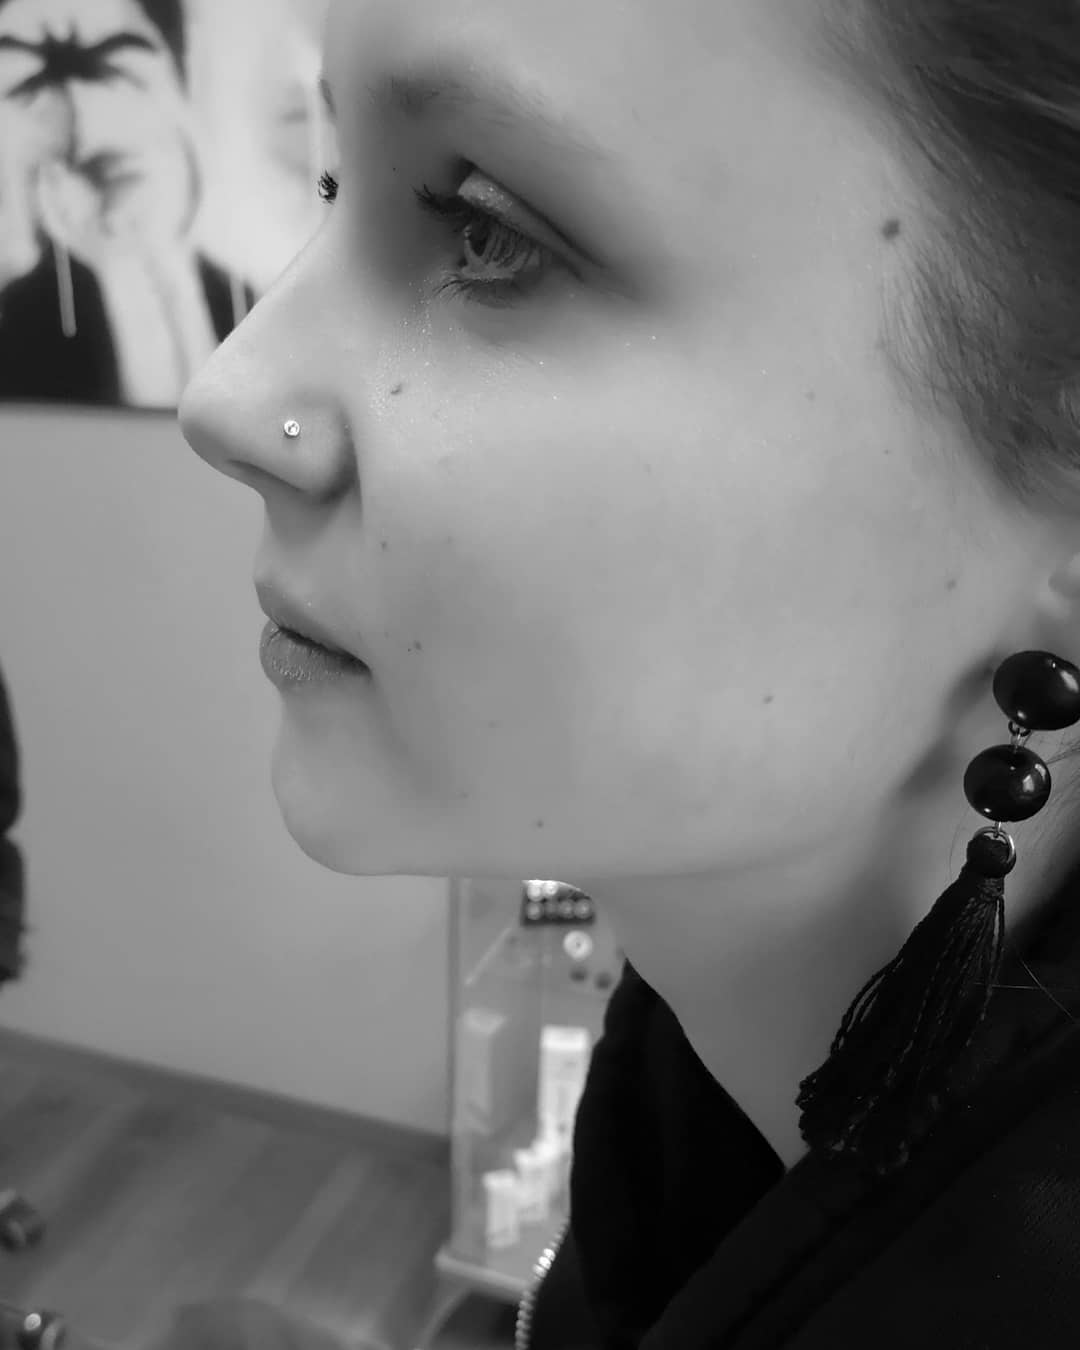 Piercingschmuck-Hamburg-Piercings-Hamburg-Piercingstudio-Hamburg